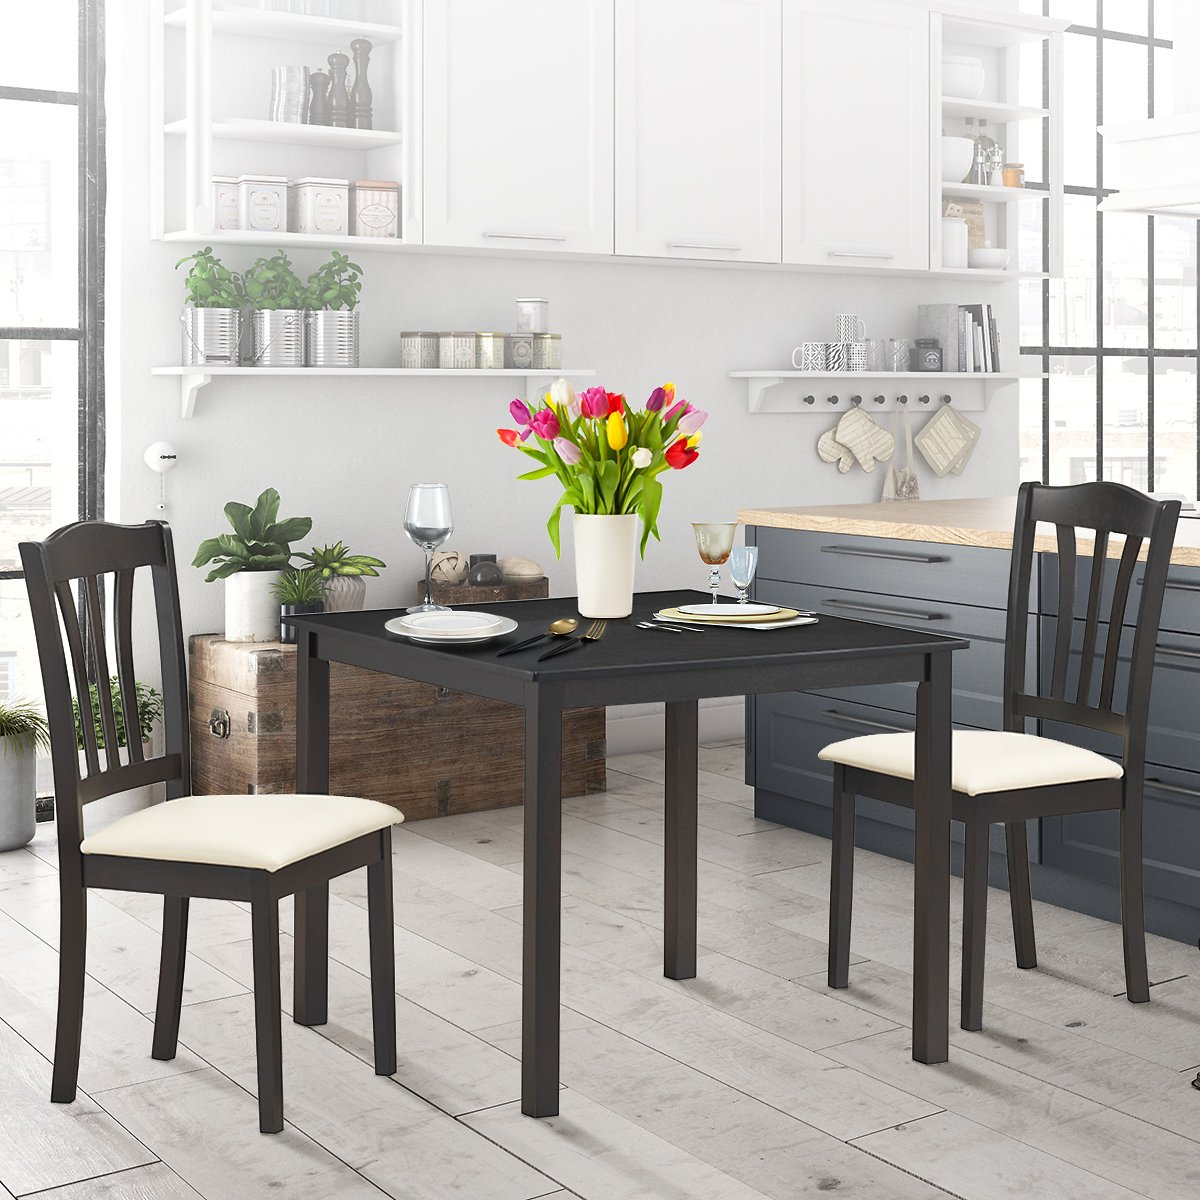 Costway 3 Piece Dining Set Square Dinning Pub Table w/ 2 Solid Wooden Chairs Padded Seat